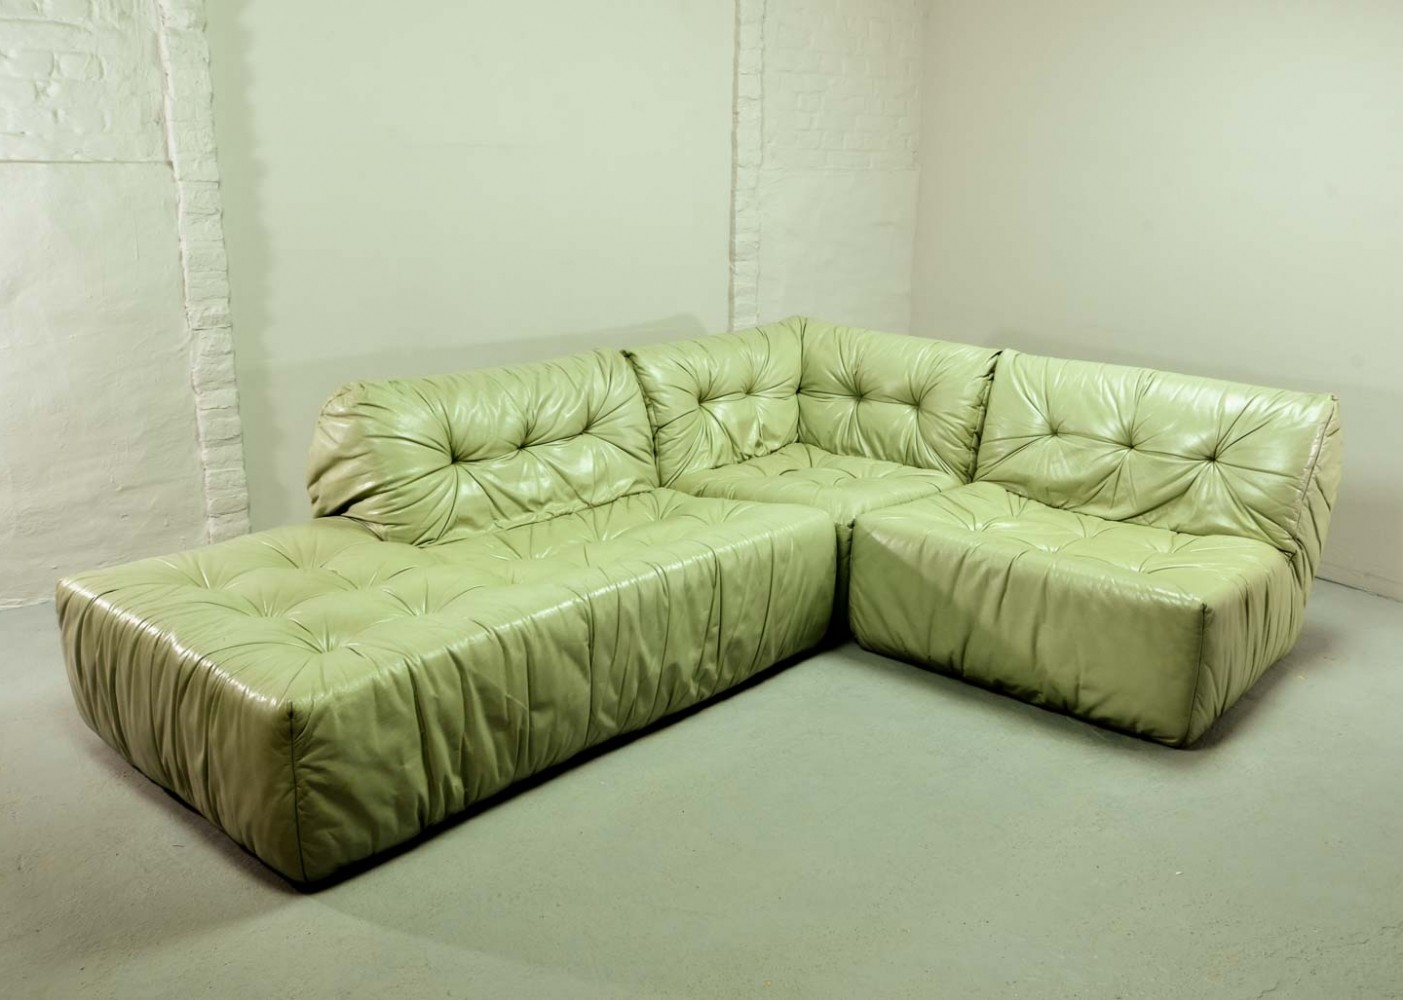 Mint Green Leather Sofa 78 Off Italian Mint Green Leather